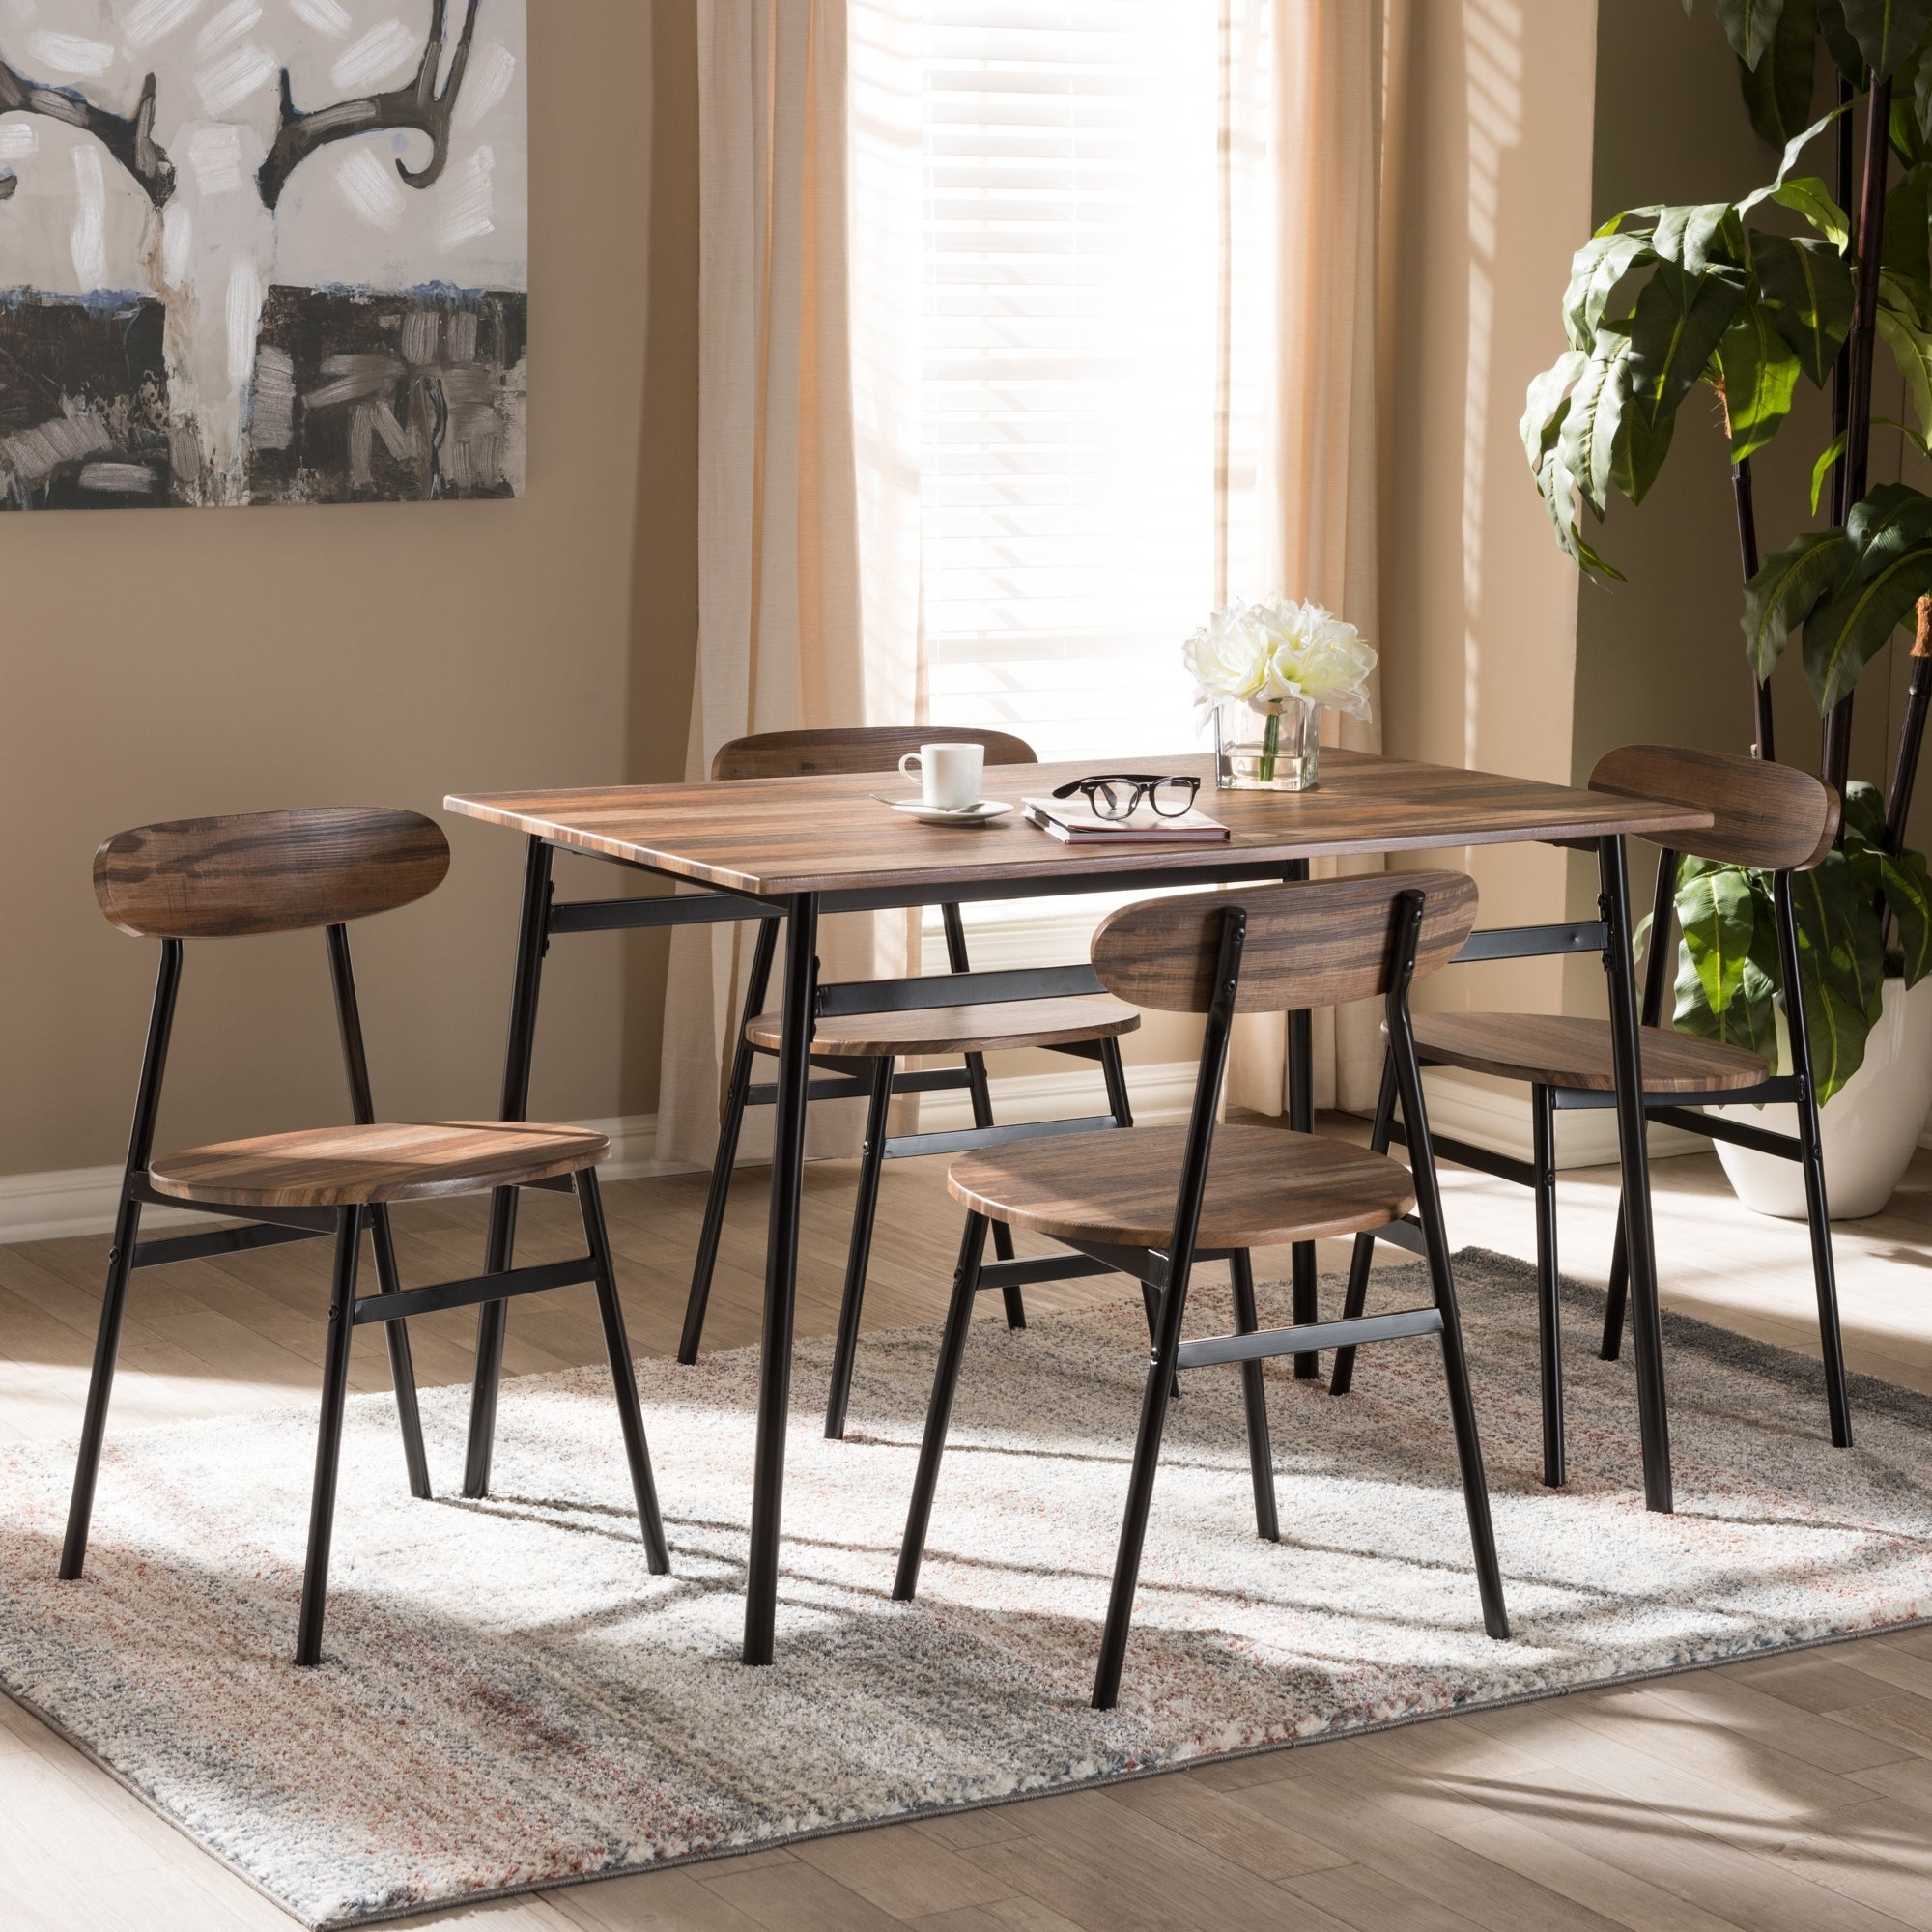 Bedfo 3 Piece Dining Sets Intended For Recent Buy 5 Piece Sets Kitchen & Dining Room Sets Online At Overstock (Gallery 15 of 20)